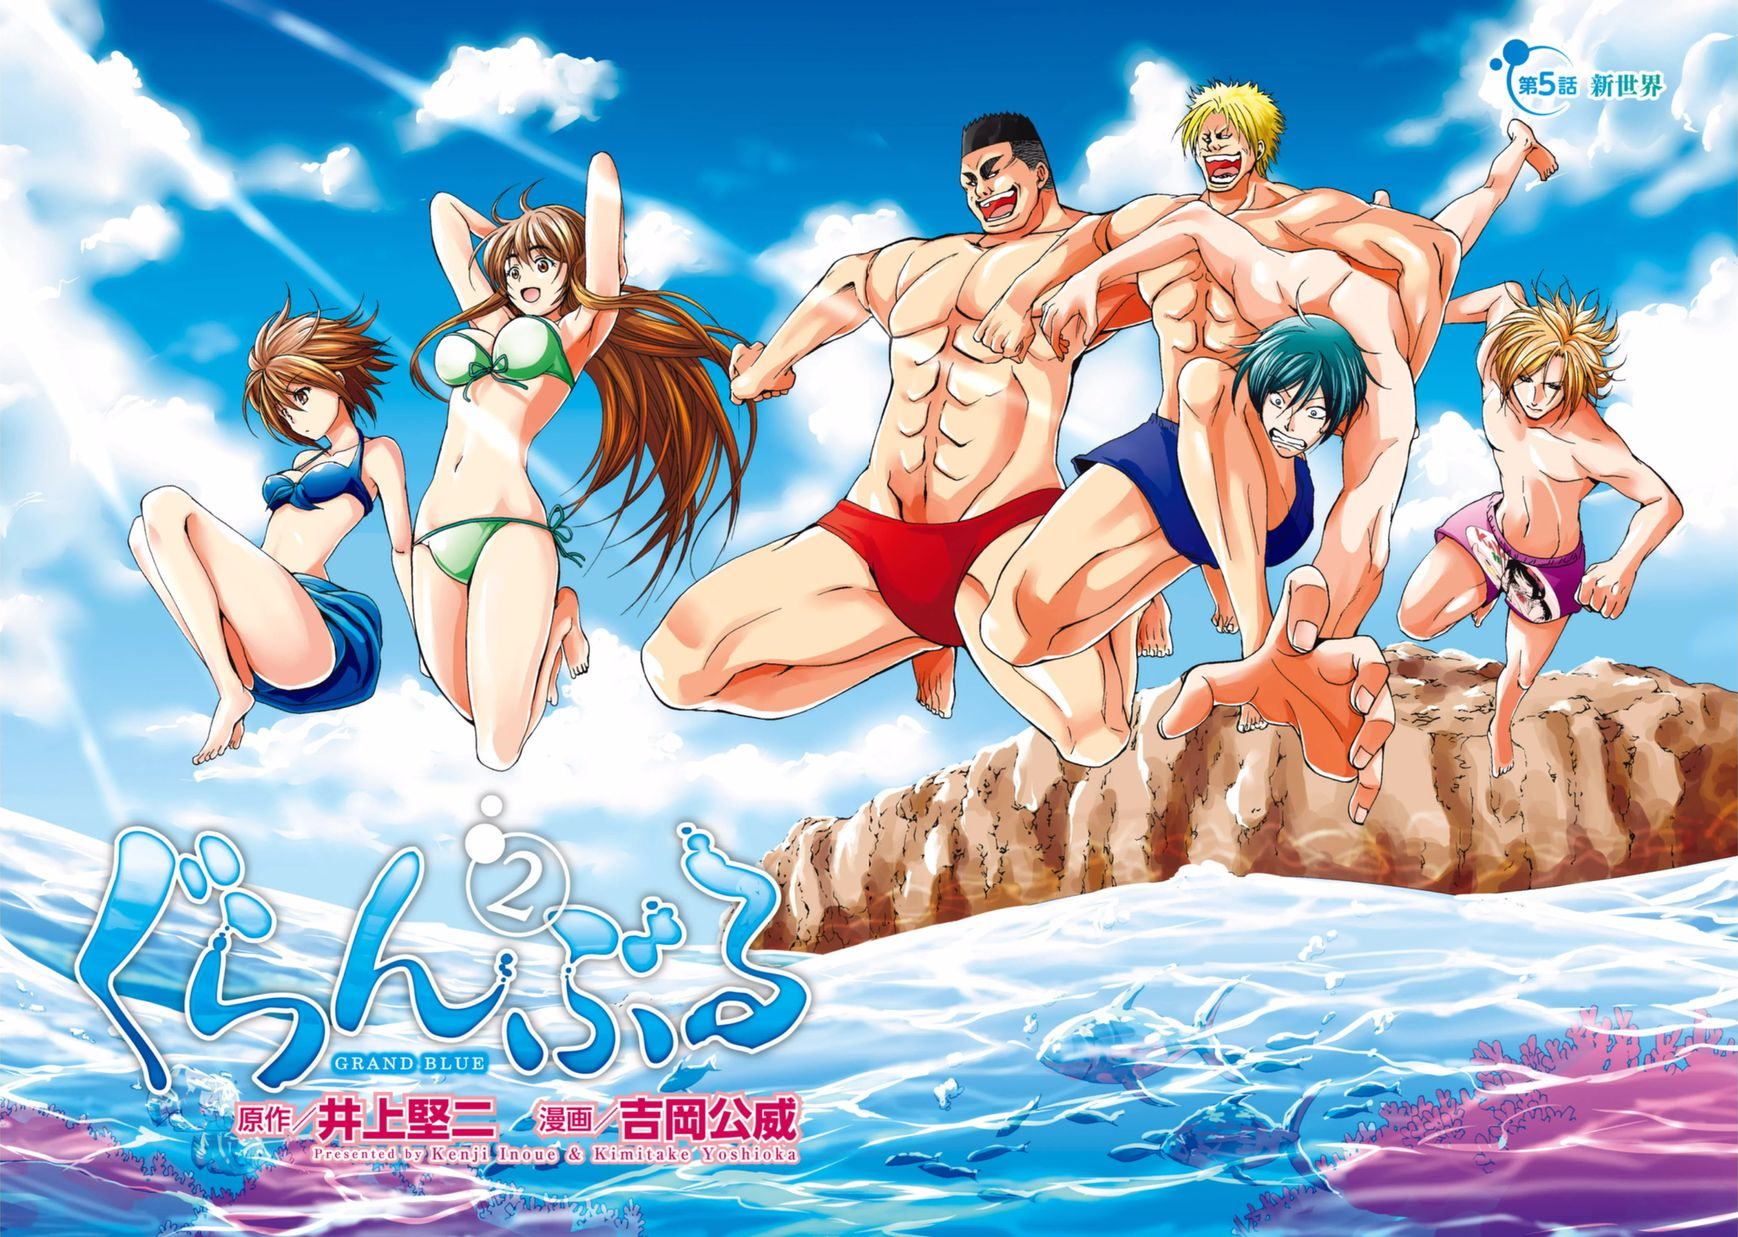 Grand Blue manga gets an anime adaptation - Poster